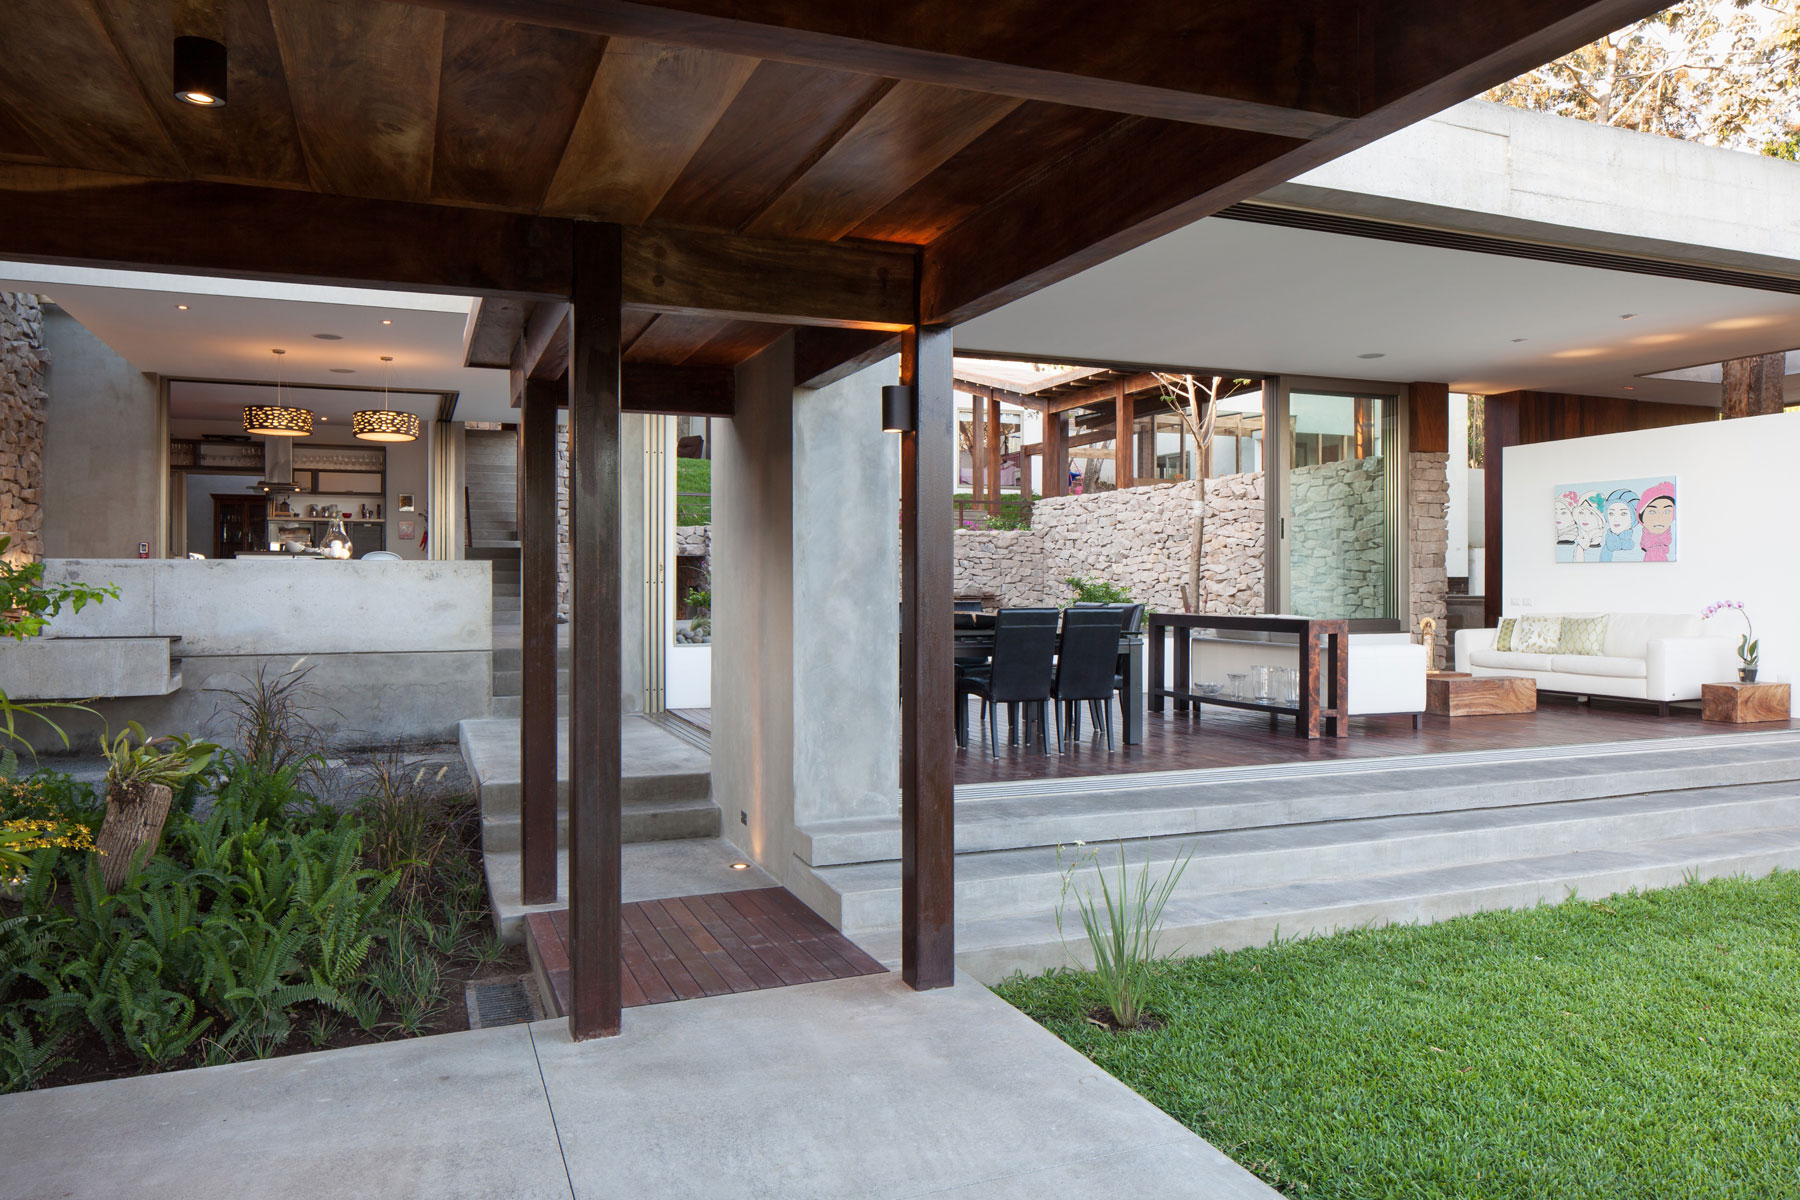 Modern rustic sensation of garden house in el salvador by for Modern house garden